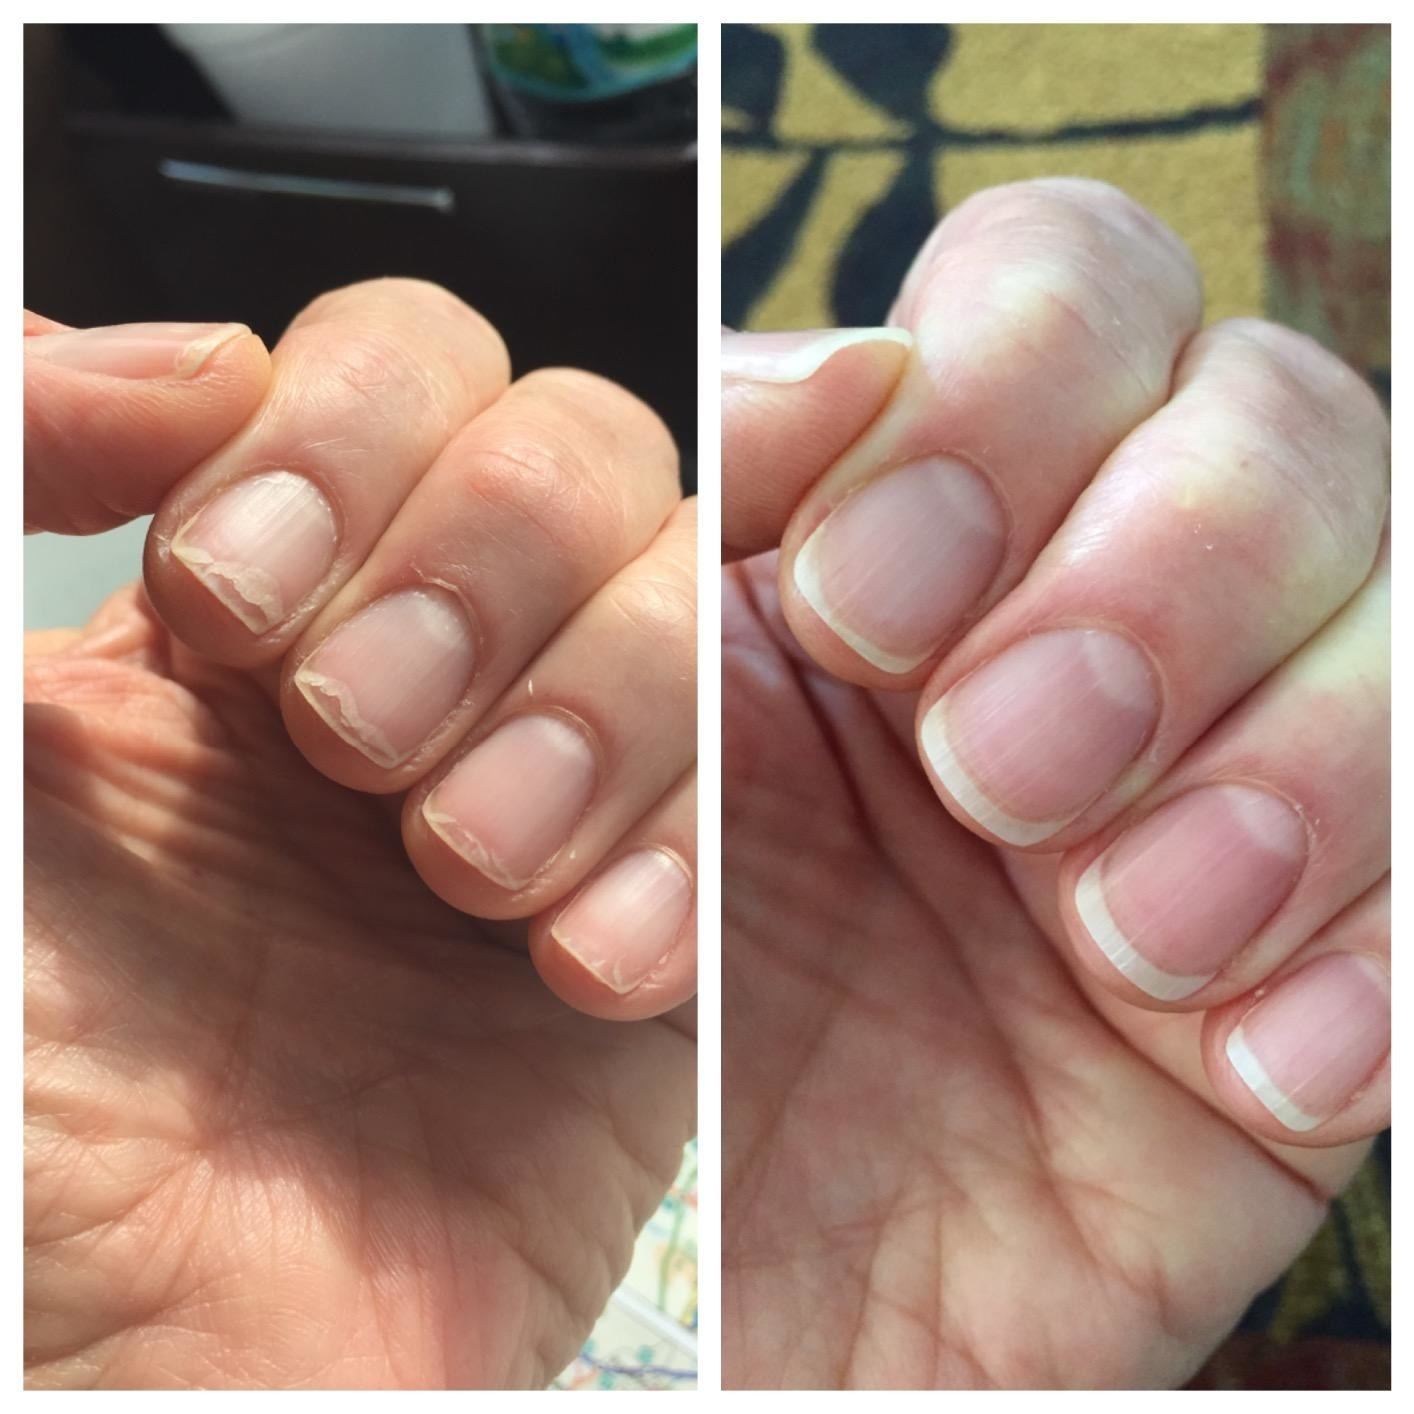 A before image of a reviewer's brittle nails and an after image of them much heaithier